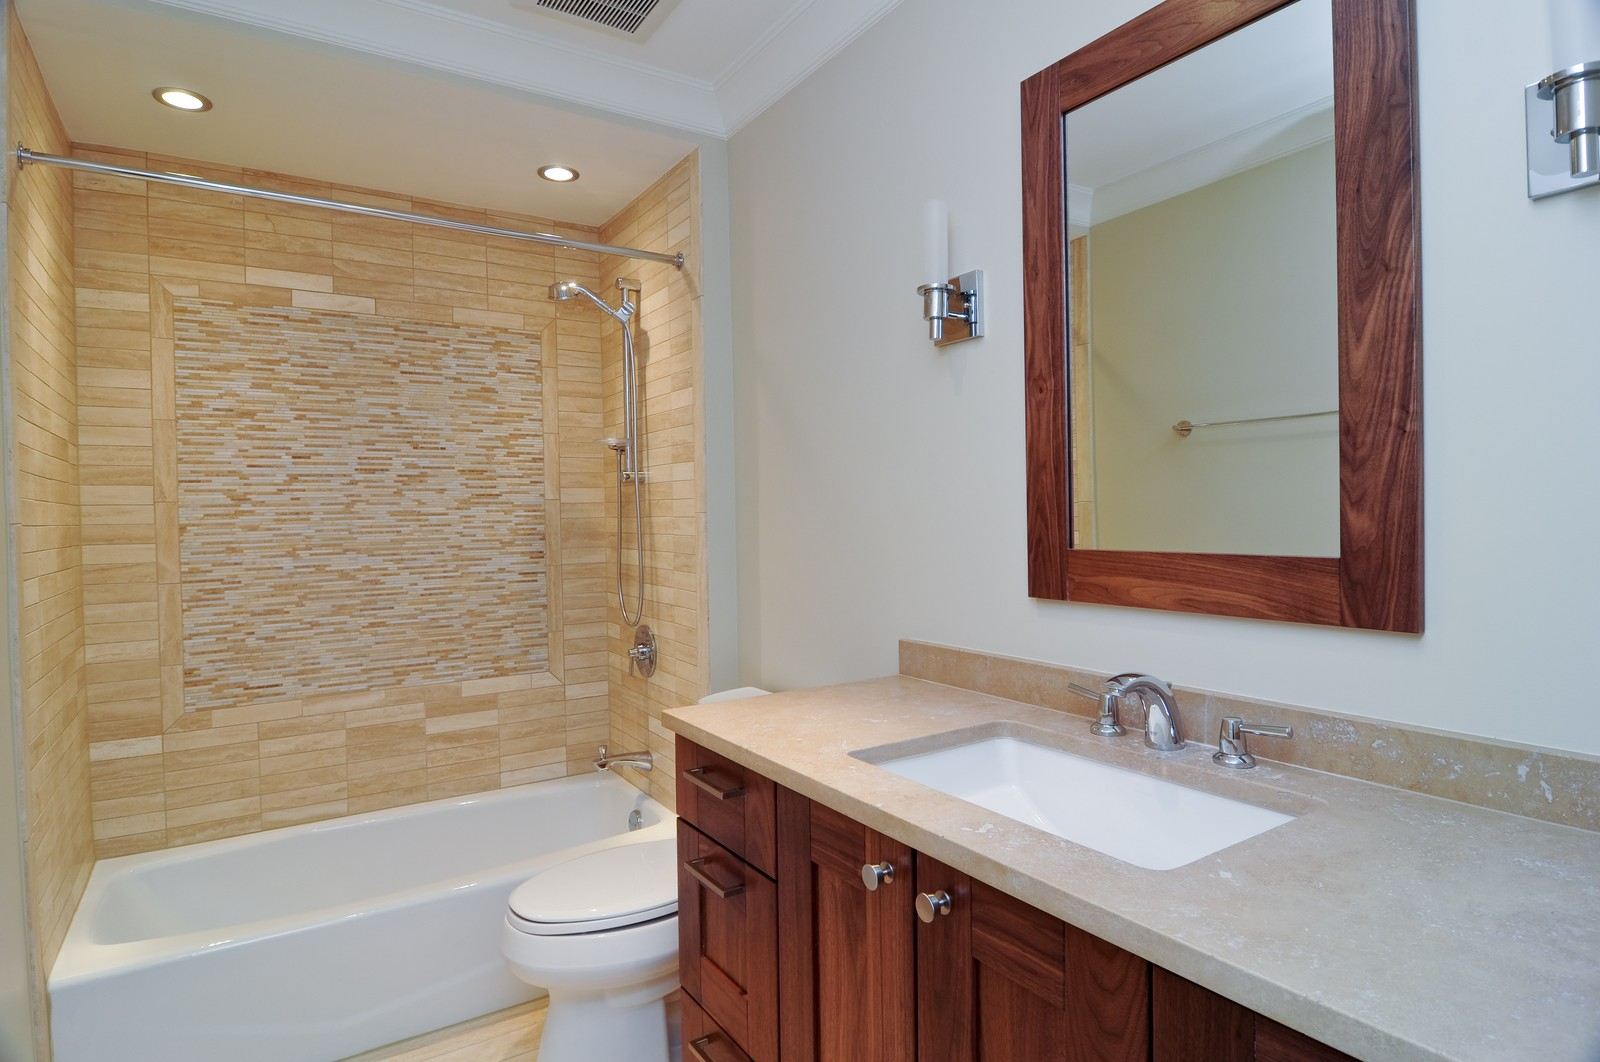 Real Estate Photography - 3845 N Paulina St, Chicago, IL, 60613 - Lower Level Bathroom